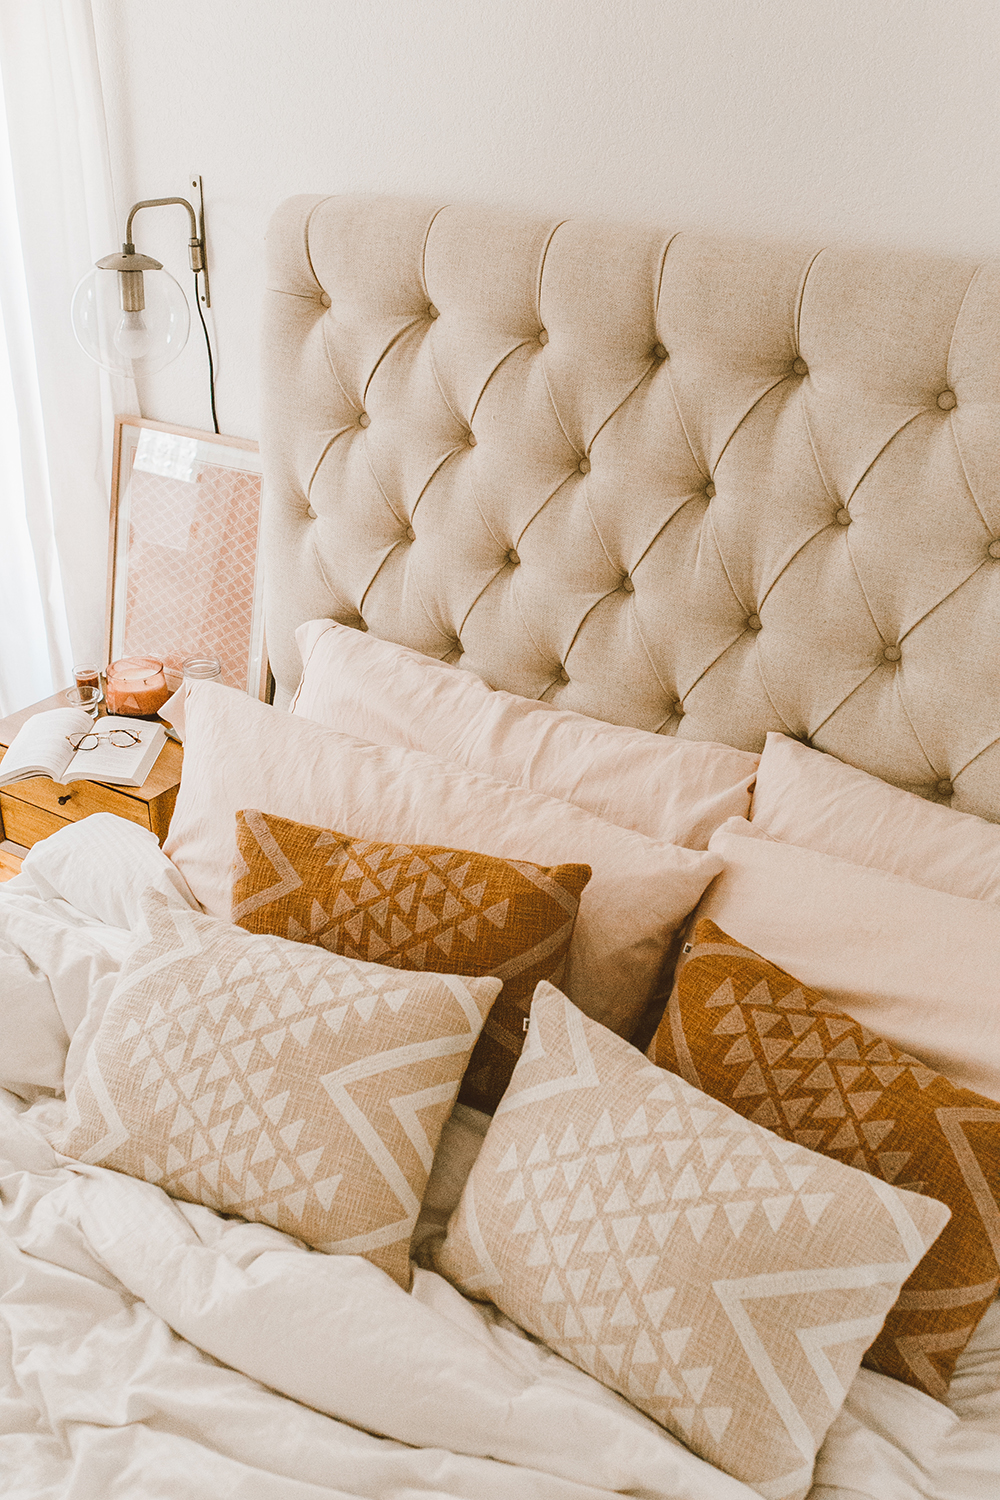 livvyland-blog-olivia-watson-austin-texas-lifestyle-blog-urban-outfitters-home-decor-bohemian-cozy-throw-pillows-bedroom-ideas-4